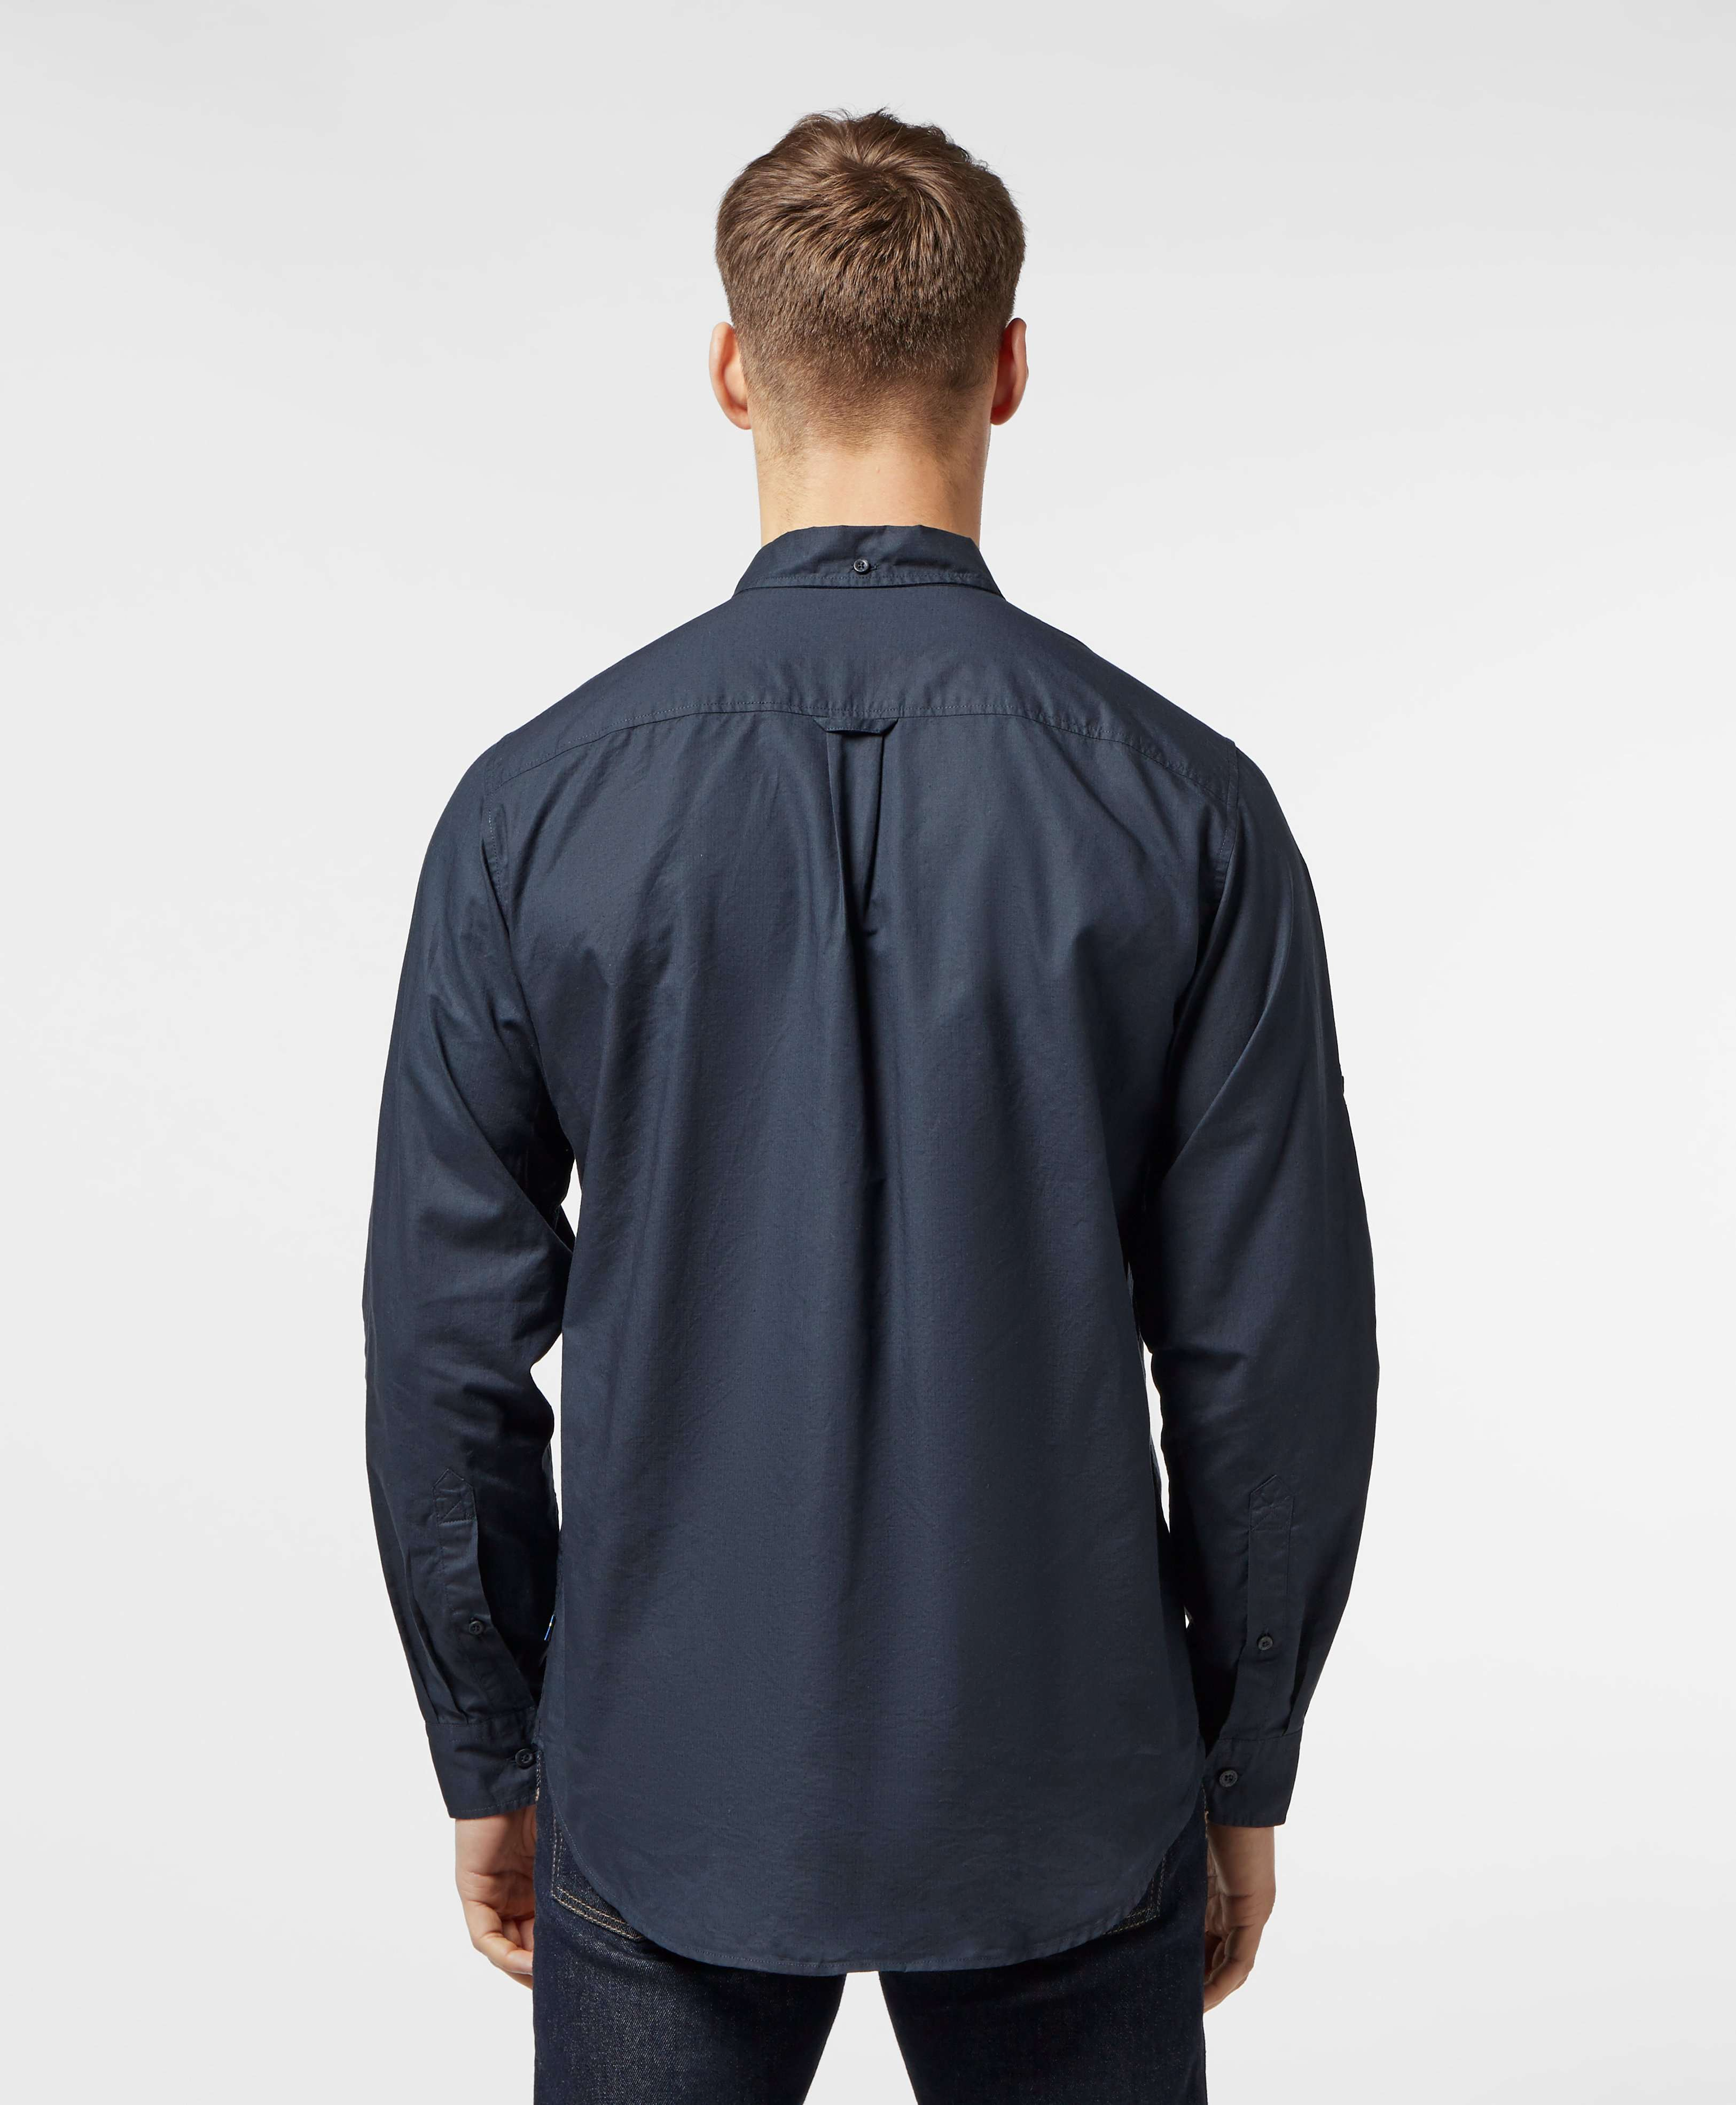 Fjallraven Ovik Long Sleeve Shirt